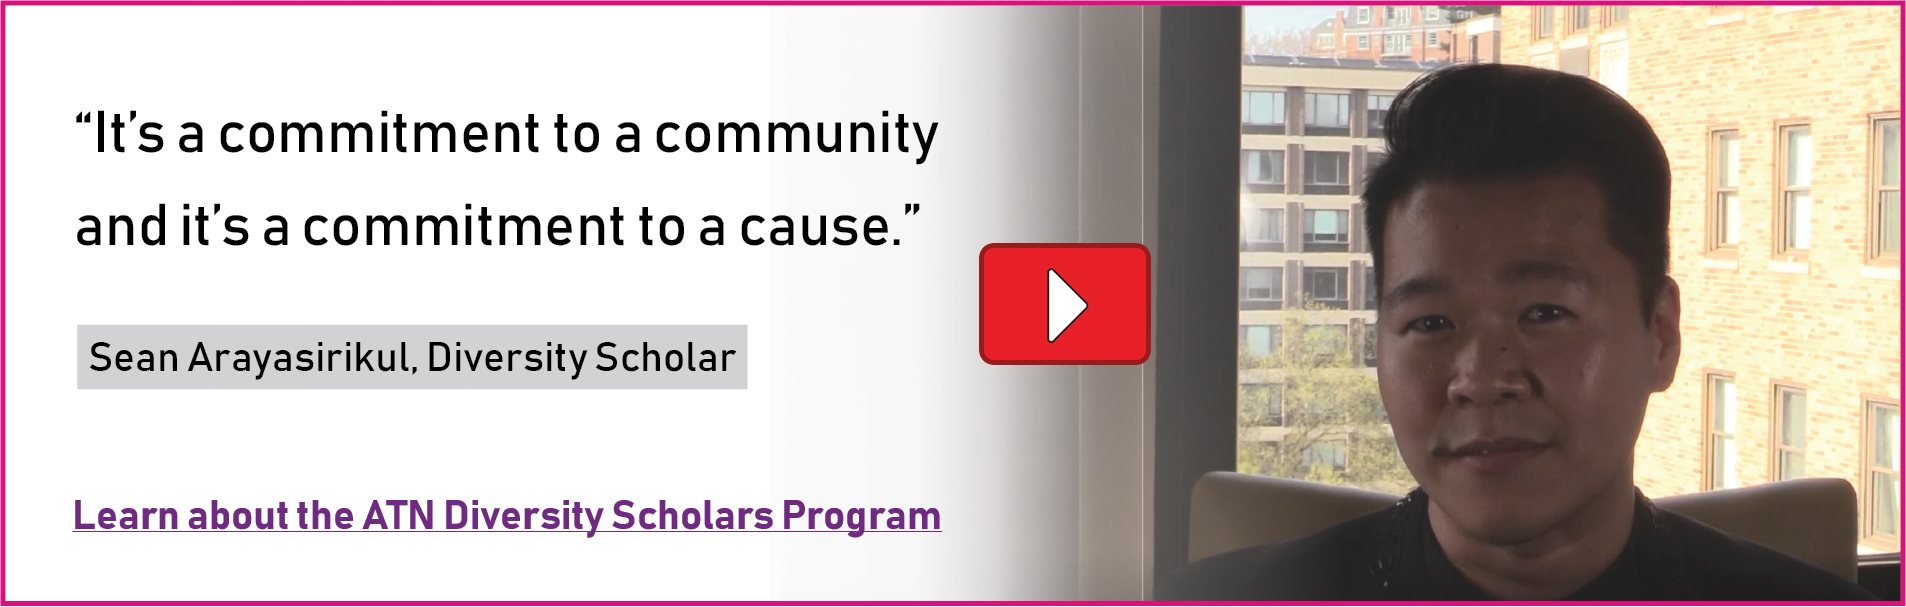 It's a commitment to a community, and a commitment to a cause. Sean Arayasirikul, ATN Diversity Scholar. Learn about the Diversity Scholars program.